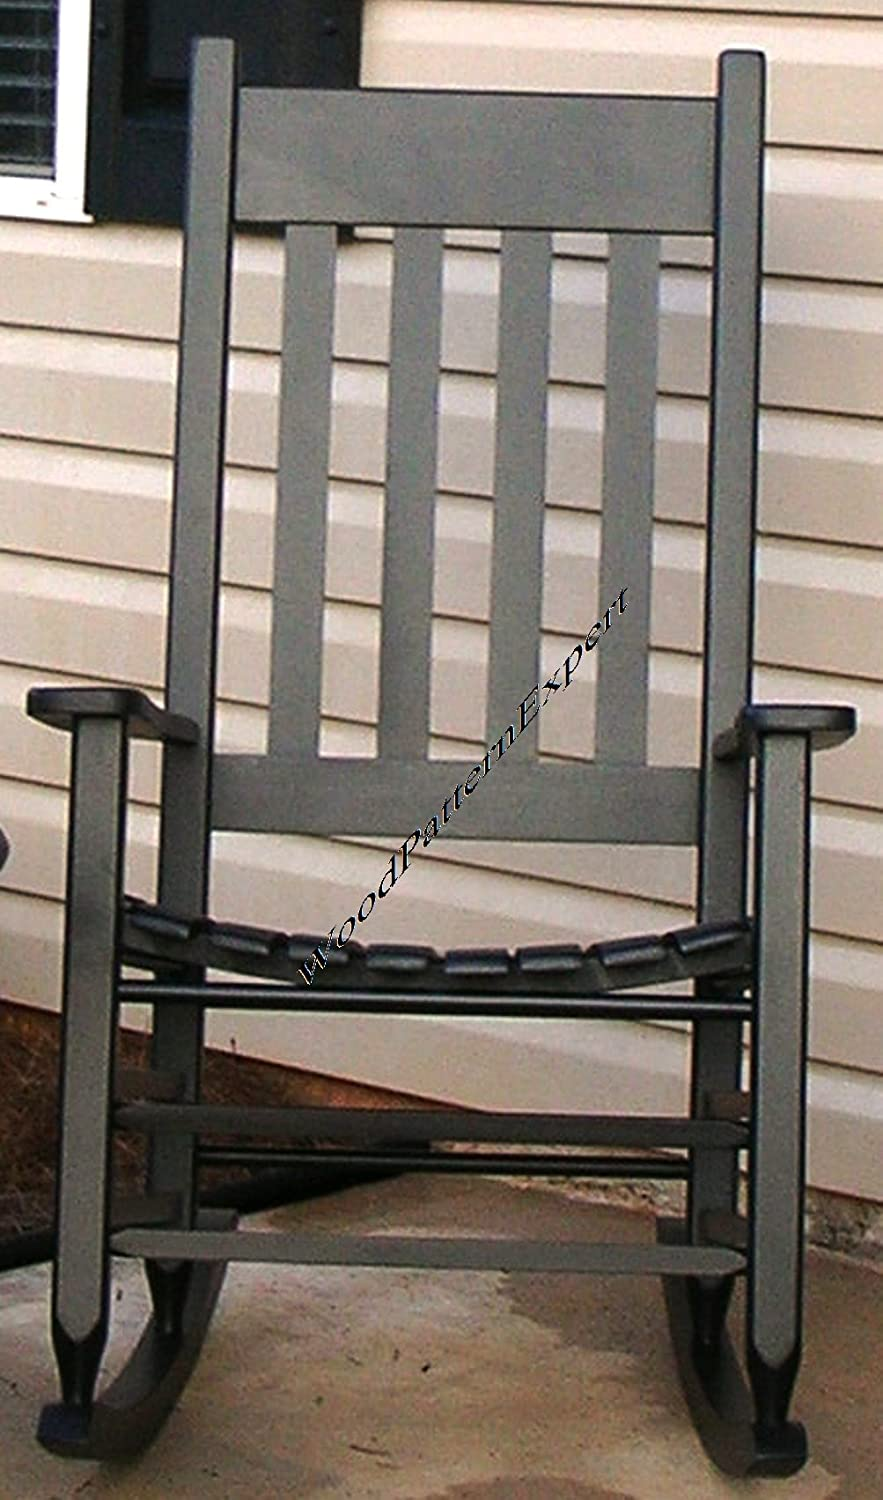 amazoncom rocking chair paper plans so easy beginners look like experts build your own front porch rocker using this step by step diy patterns by